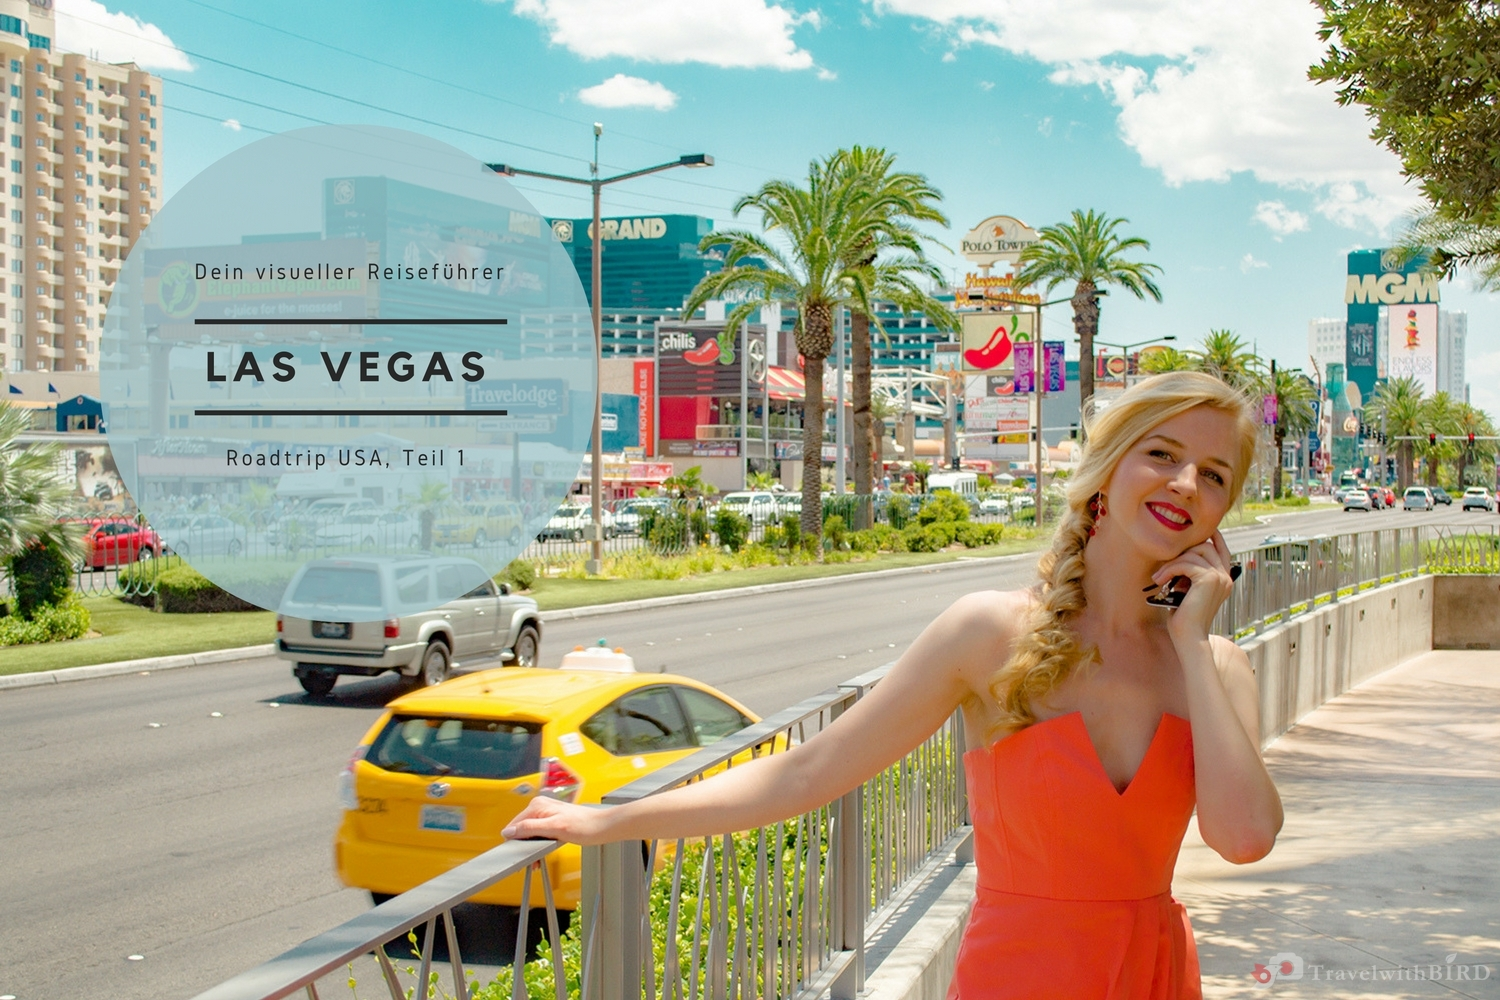 Las Vegas Blog – die unangefochtene Mutter des Entertainments